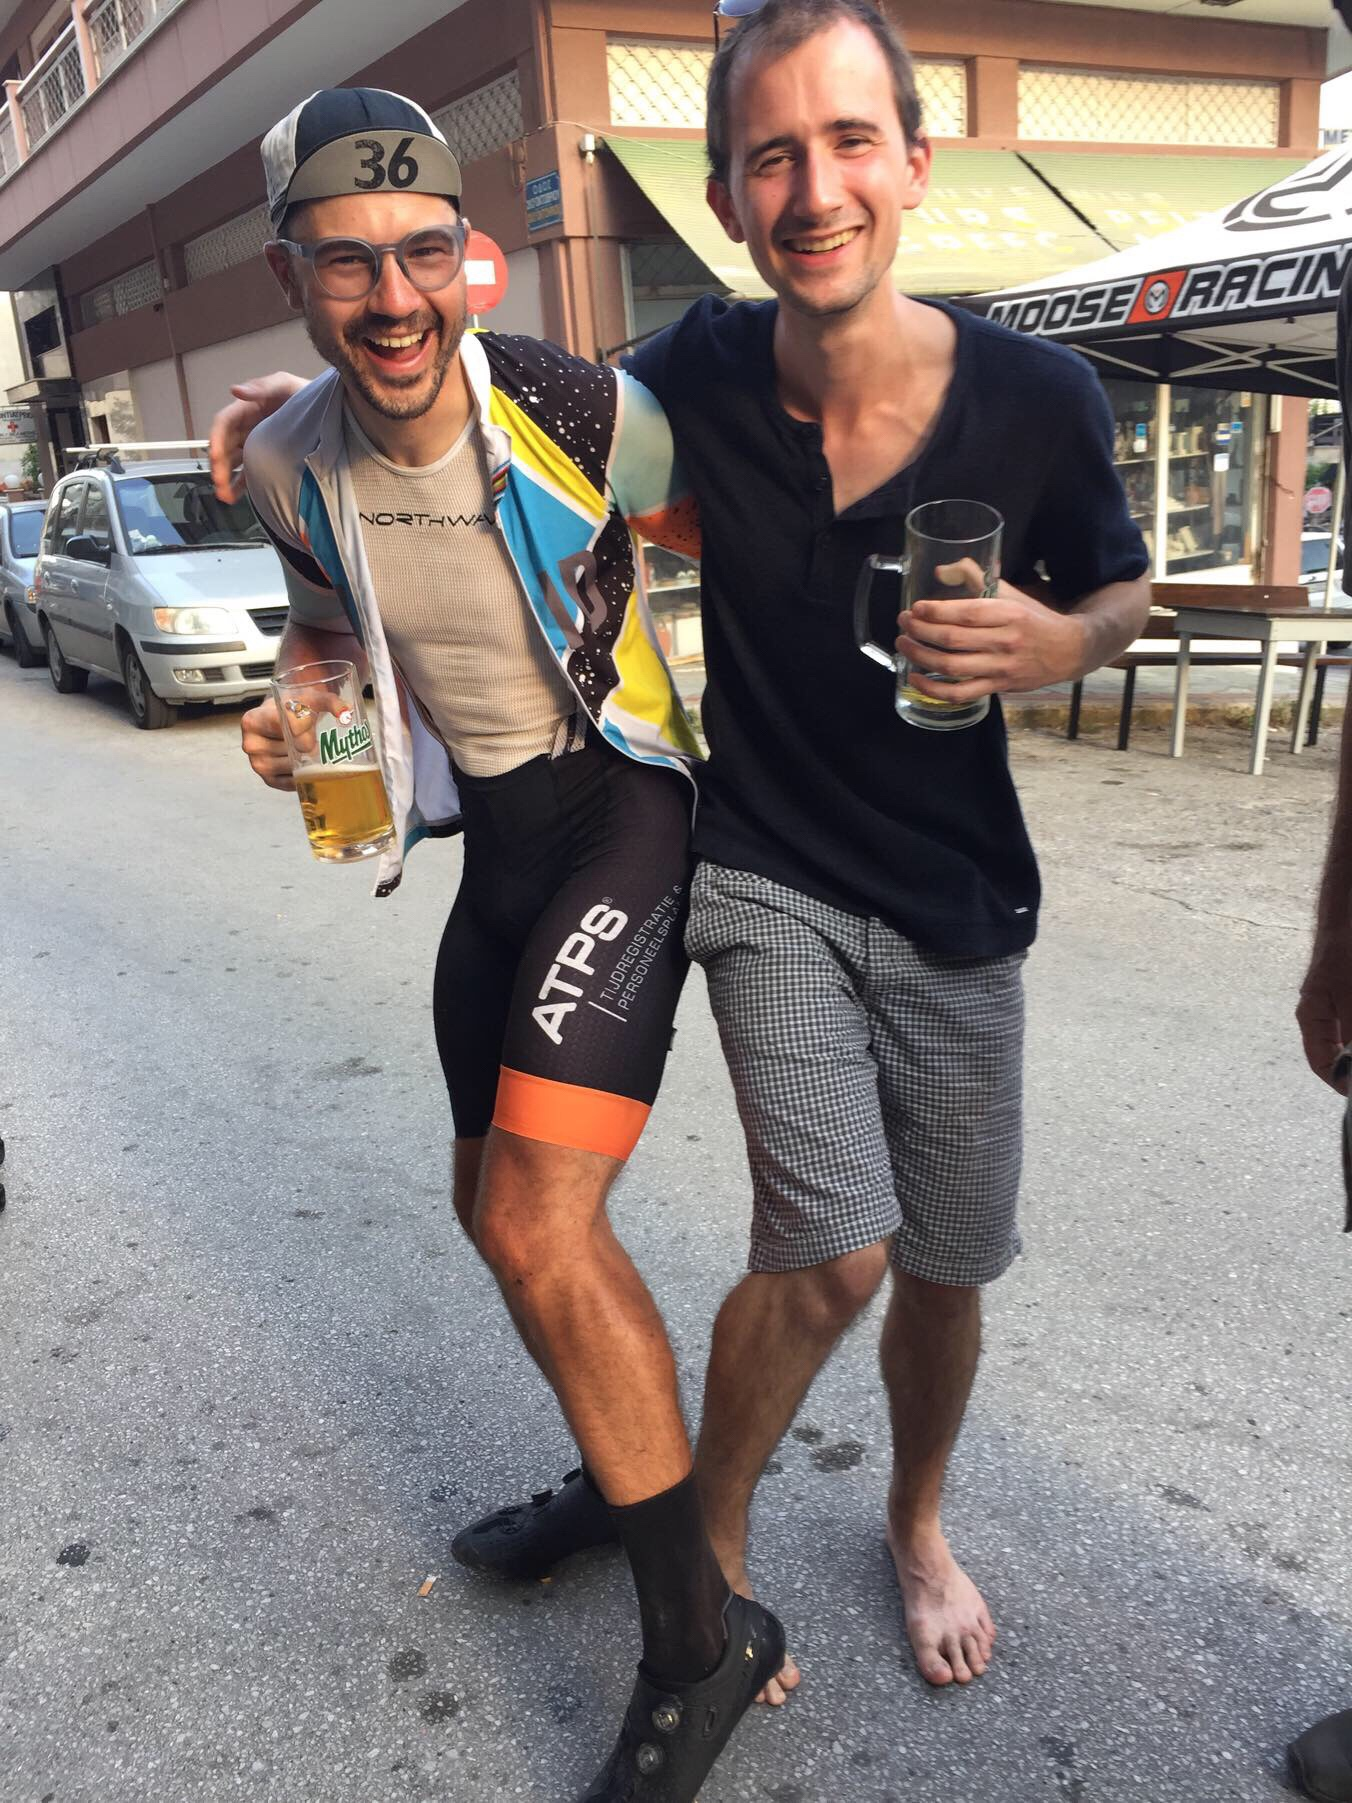 Leg comparison (and showing of the ATPS logo on my bib shorts)